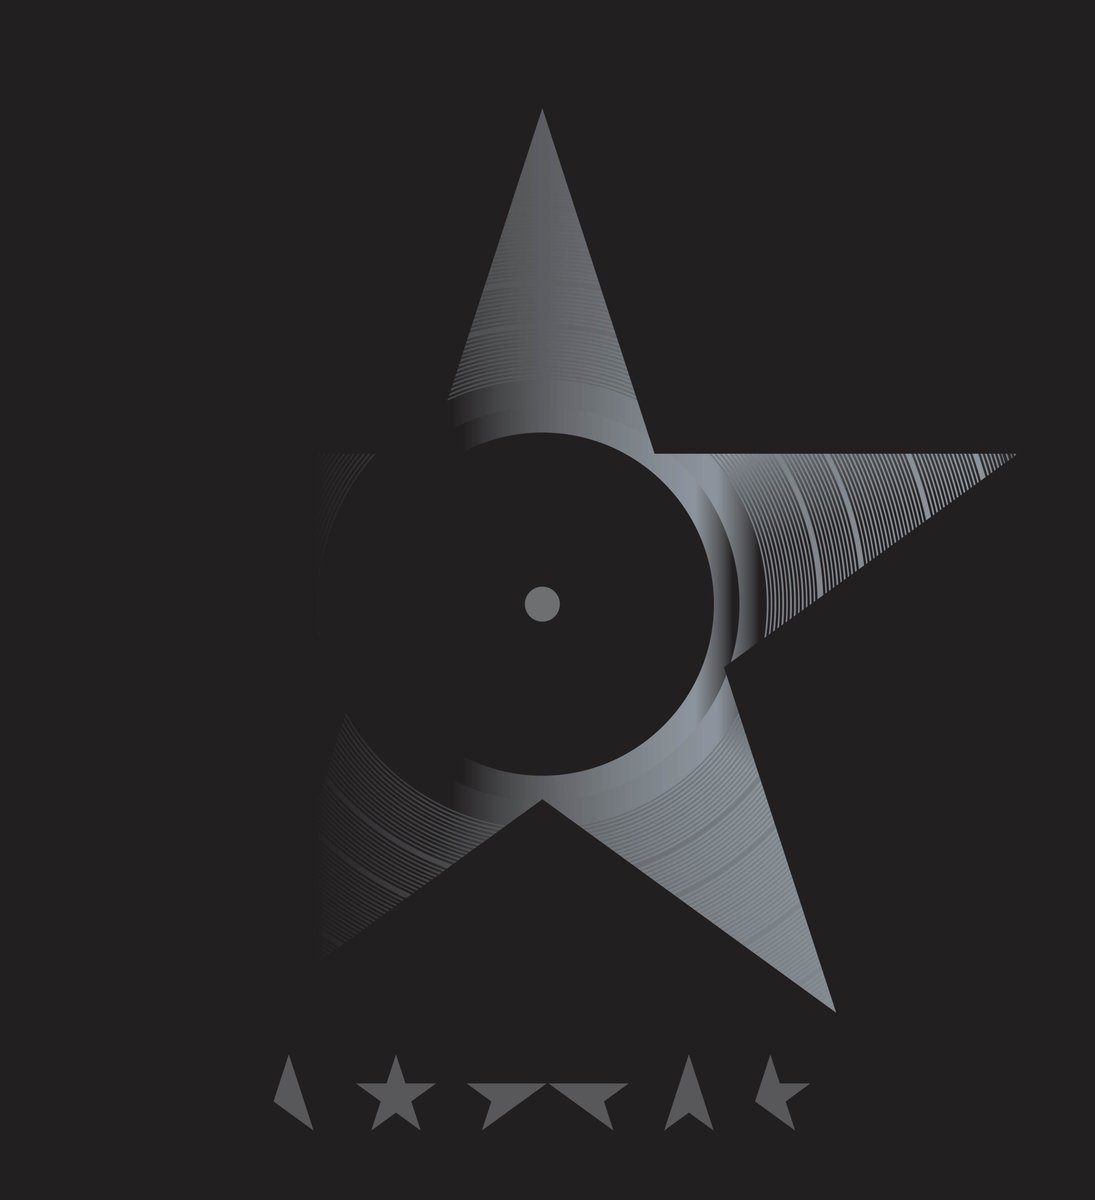 We're giving away a vinyl copy of David Bowie's 'Blackstar.' RT for a chance to win!: https://t.co/7oxYiUvry1 https://t.co/RhVVIYhFyW